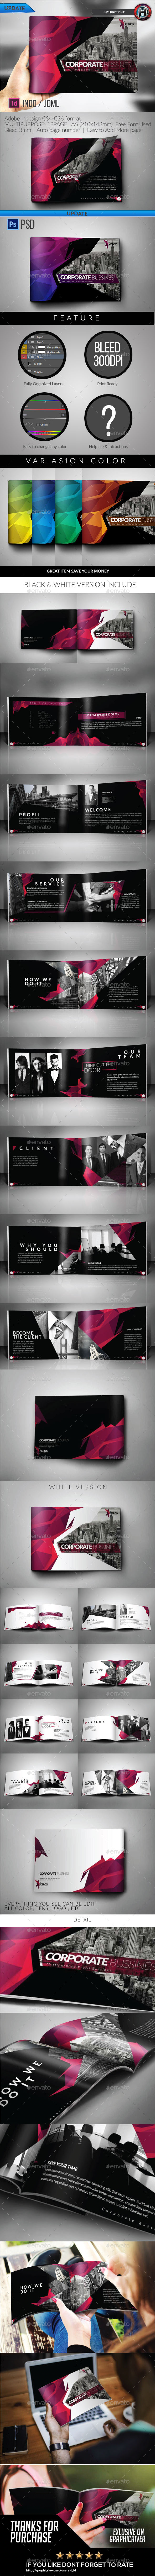 Multipurpose  Corporate Architecture  Brochure - Corporate Brochures